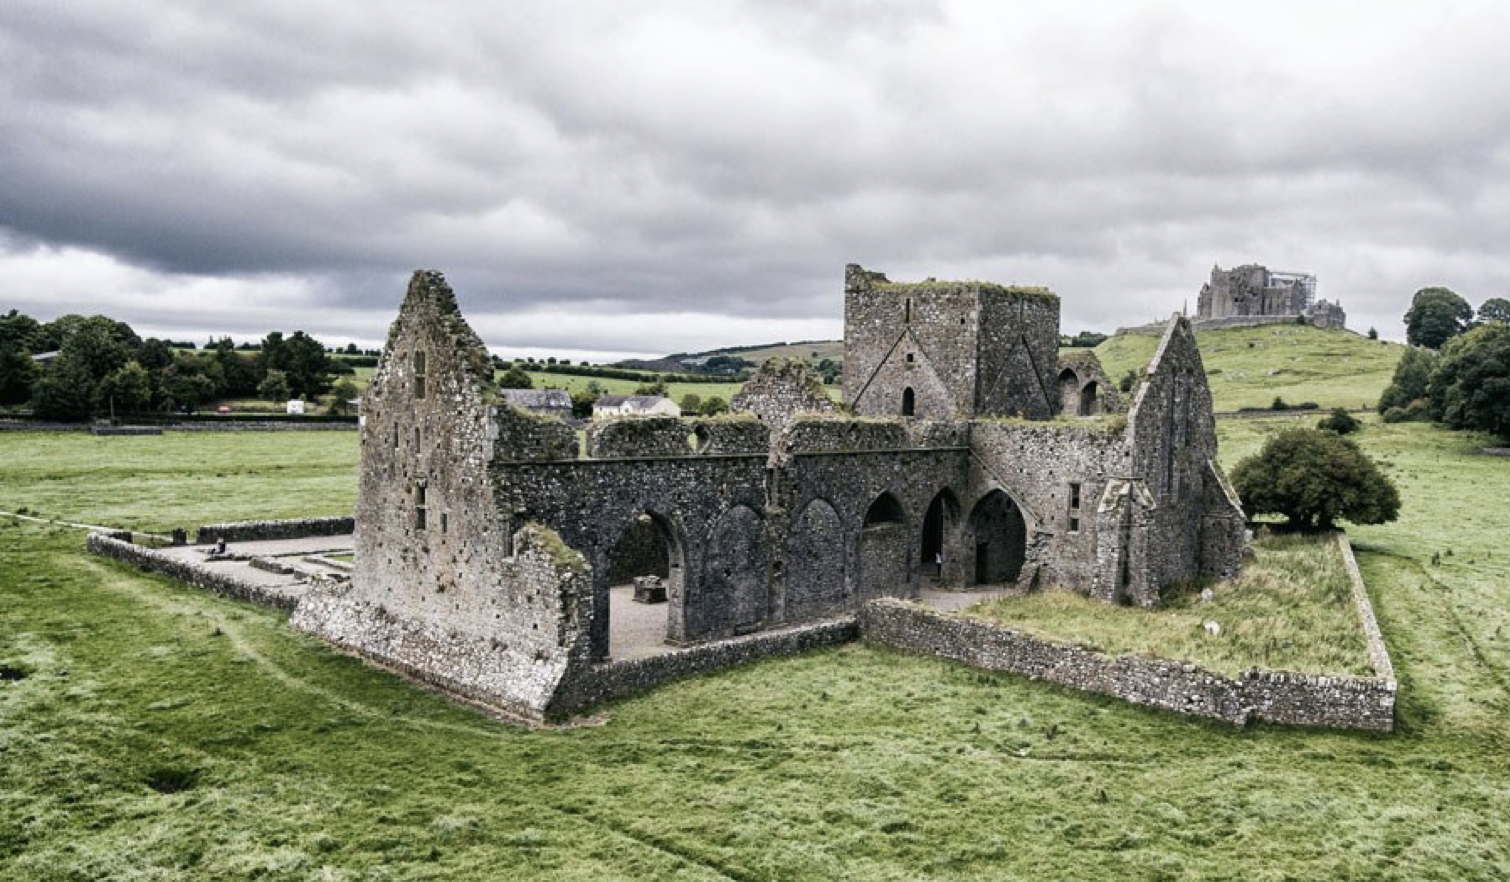 June 6:Cahir CastleRock of CashelDoolin - Depart for Doolin via Tipperary and Limerick.Visit Cahir Castle & Swiss Cottage- It is one of Ireland's largest and best preserved castles, and a short fairy trail can be followed from the castle to the charming cottage.Continue onto Cashel to visit The Rock of Cashel. This was the seat of kings and mediaeval bishops for 900 years and flourished until the early 17th century. Brian Ború was crowned King of Munster here in 977 and he became High King of Ireland in 1002.Continue on to the West Coast of Clare via LimerickYou'll have the evening free in DoolinWith allegedly more musicians per square mile in this county than anywhere in the world, it's unsurprising that this small fishing village is hailed as the capital of Irish folk music. Musical traditions still reign strong today, and those looking for an authentic taste of traditional Irish music won't have to look far in Doolin.The village's three historic pubs, Gus O'Connor's, Mcdermott's and Mcgann's, all host nightly music sessions, where you can hear Gaelic poetry set to music and admire the soulful timbre of traditional instruments like Celtic harps, tin whistles, fiddles and Irish flutes. Musicians from all over the globe visit Doolin in search of the genre's roots, and a number of events throughout the year bring together local and international musicians for impromptu jam sessions.